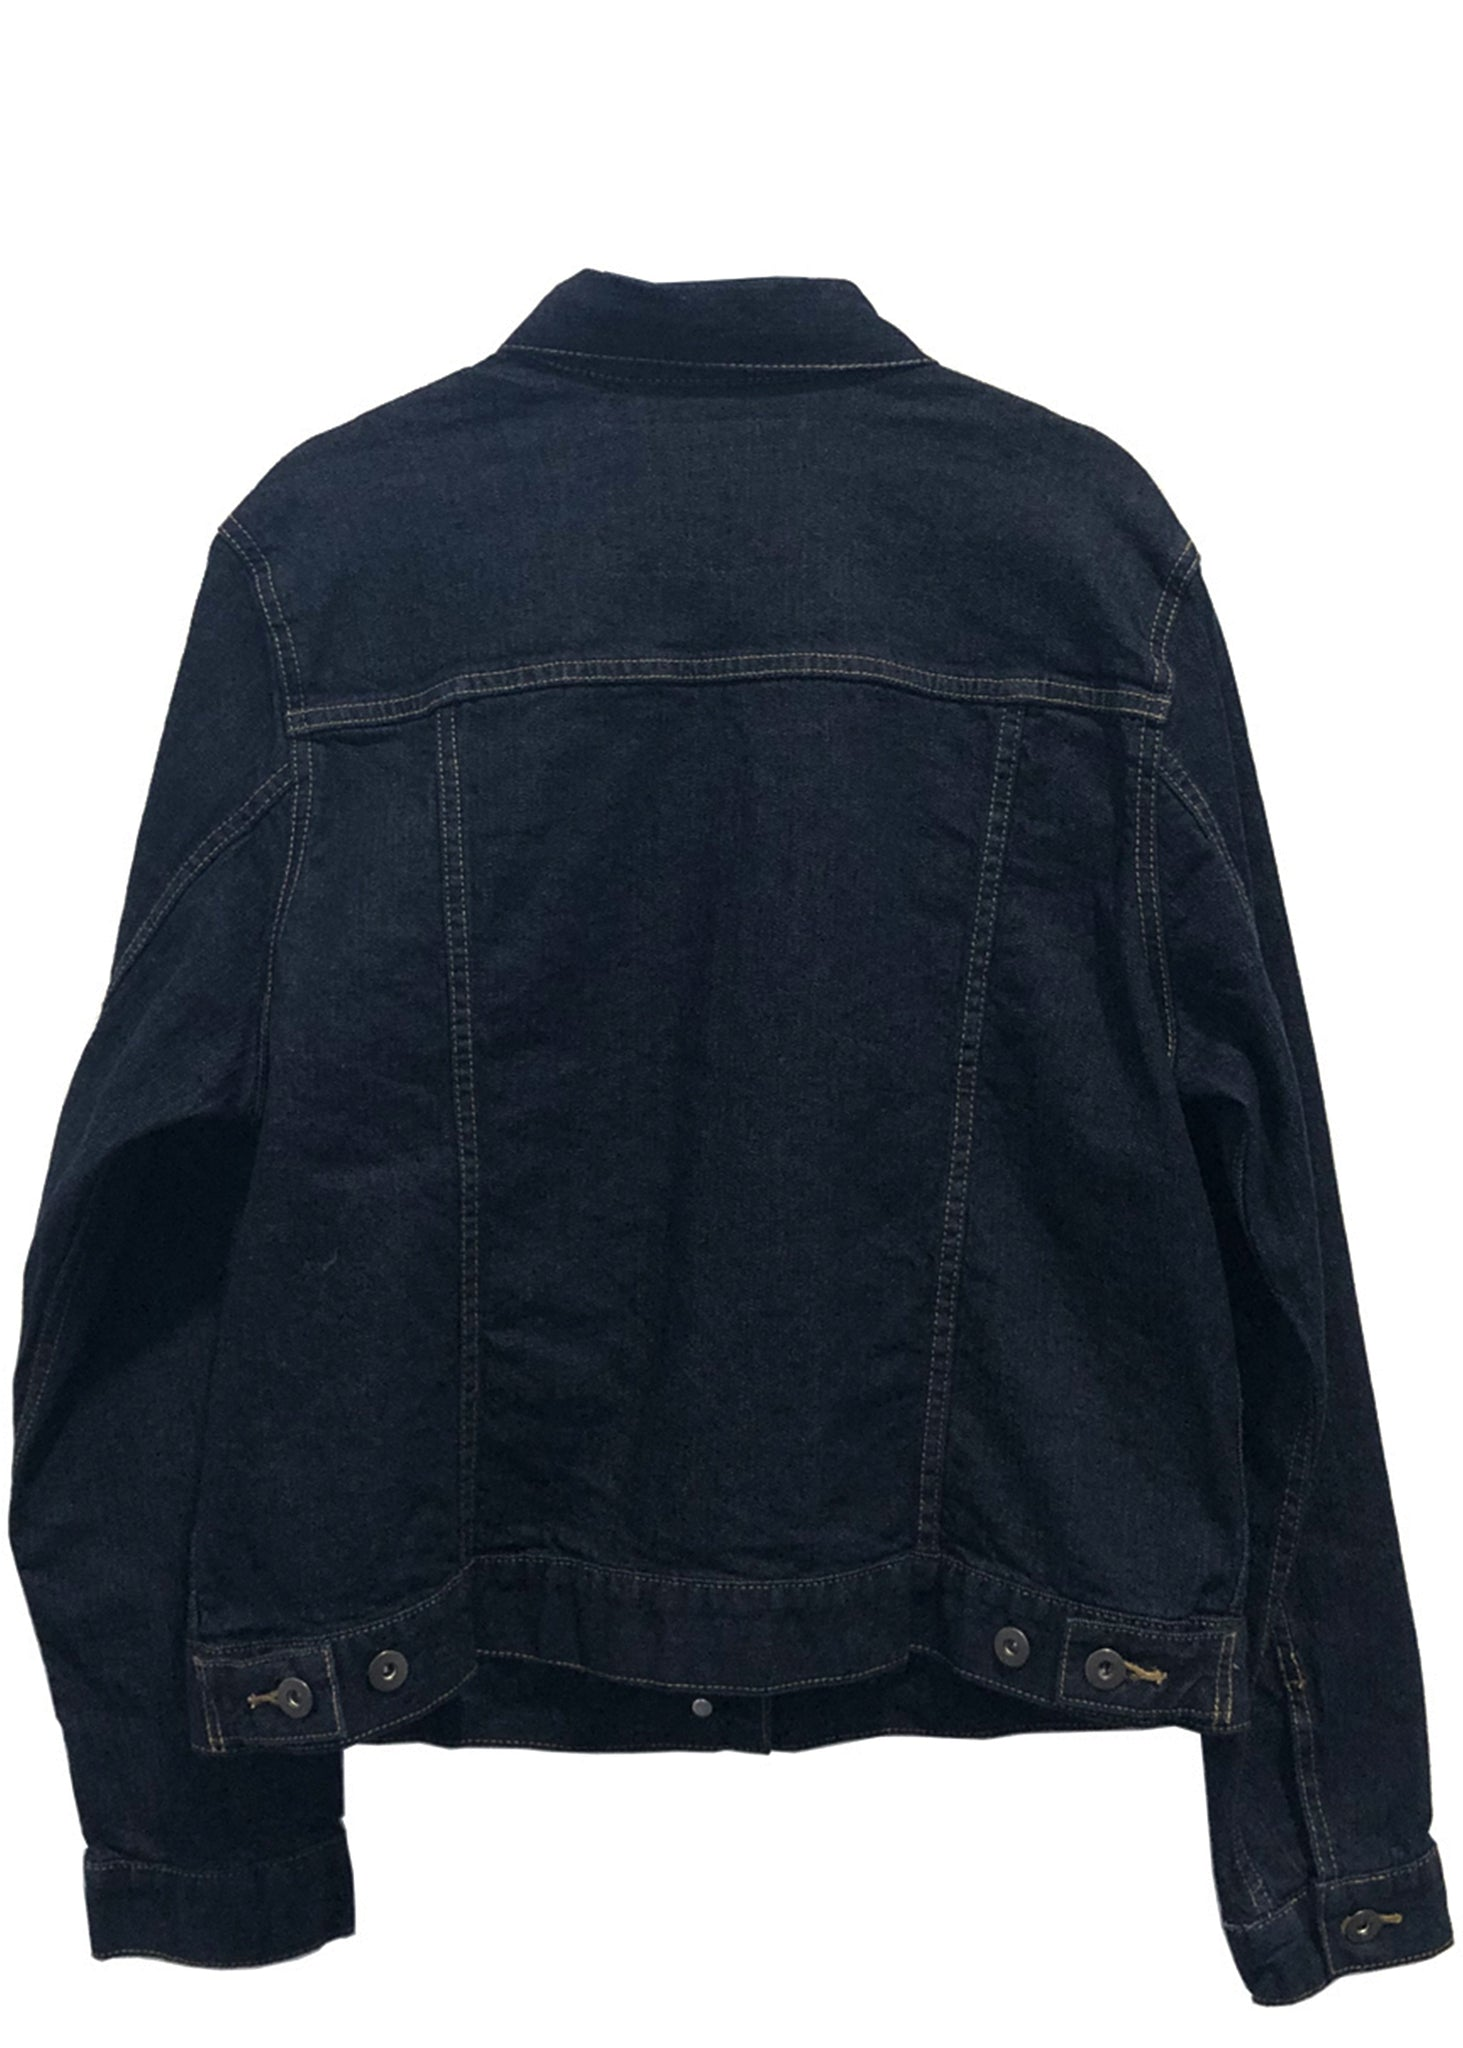 MATCHBOOKS DENIM JACKET - Women's Jackets & Coats - Libertine